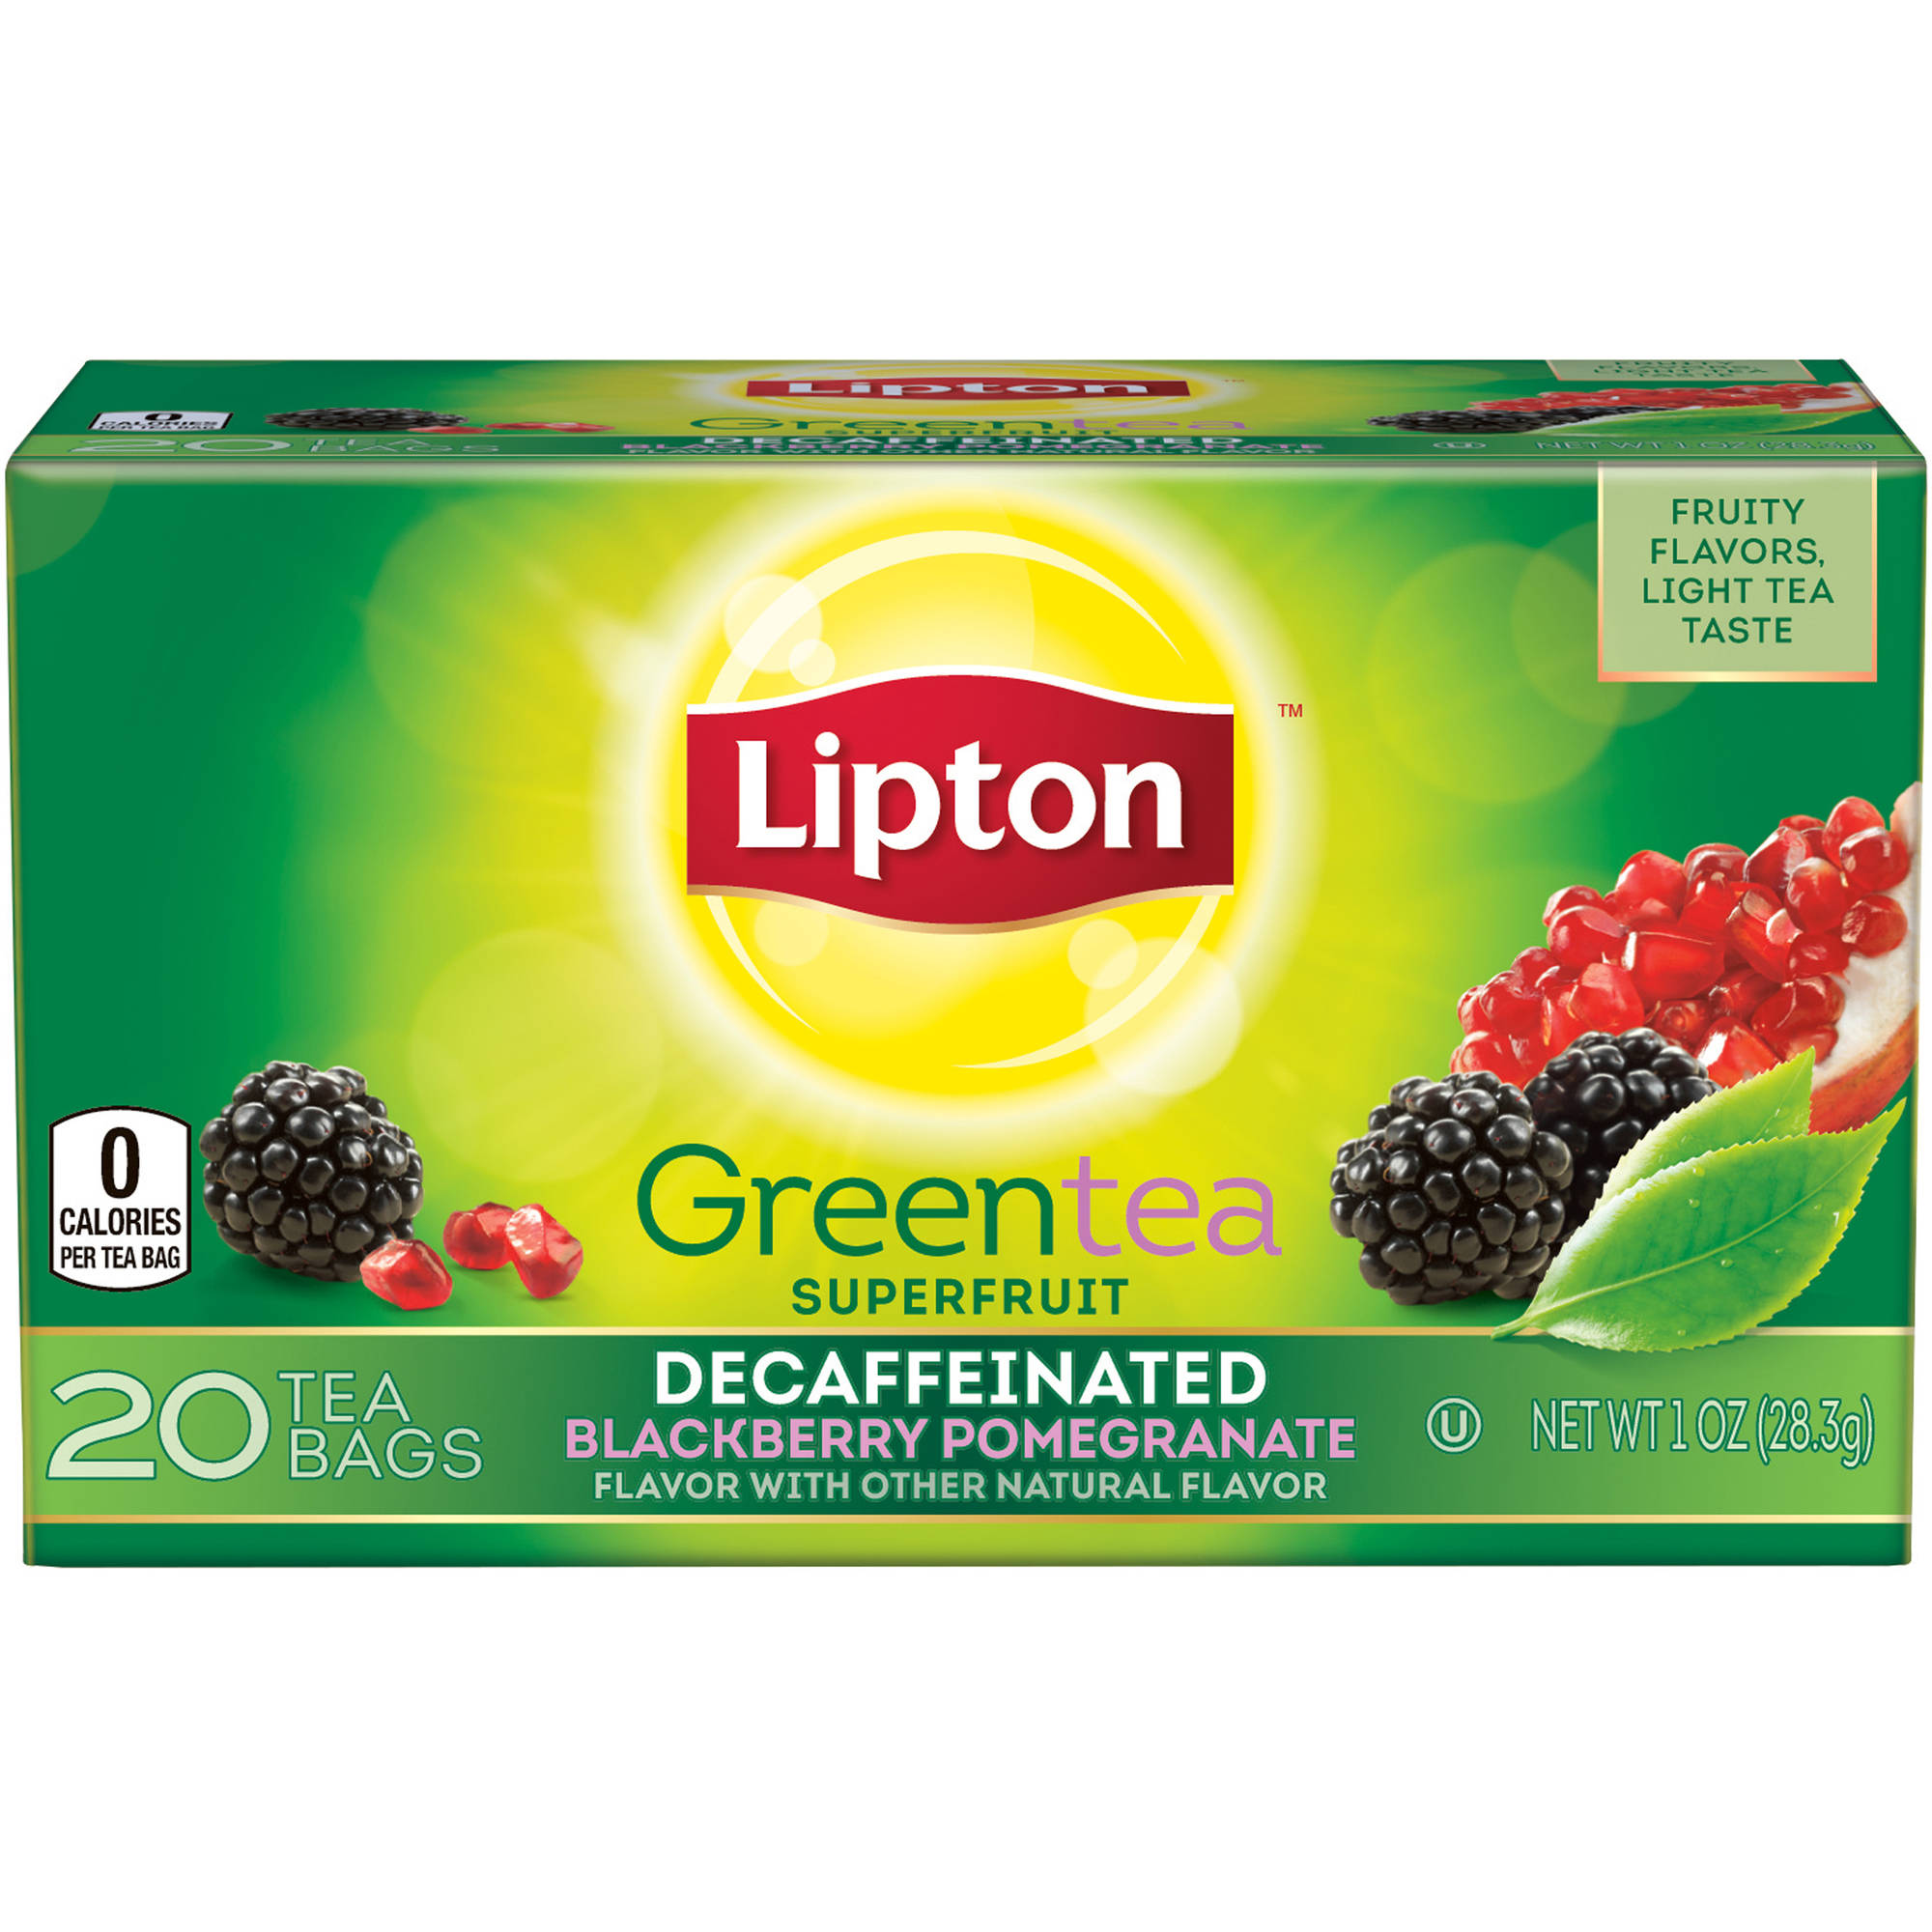 Lipton Decaffeinated Blackberry Pomegranate Green Tea Bags, 20 ct